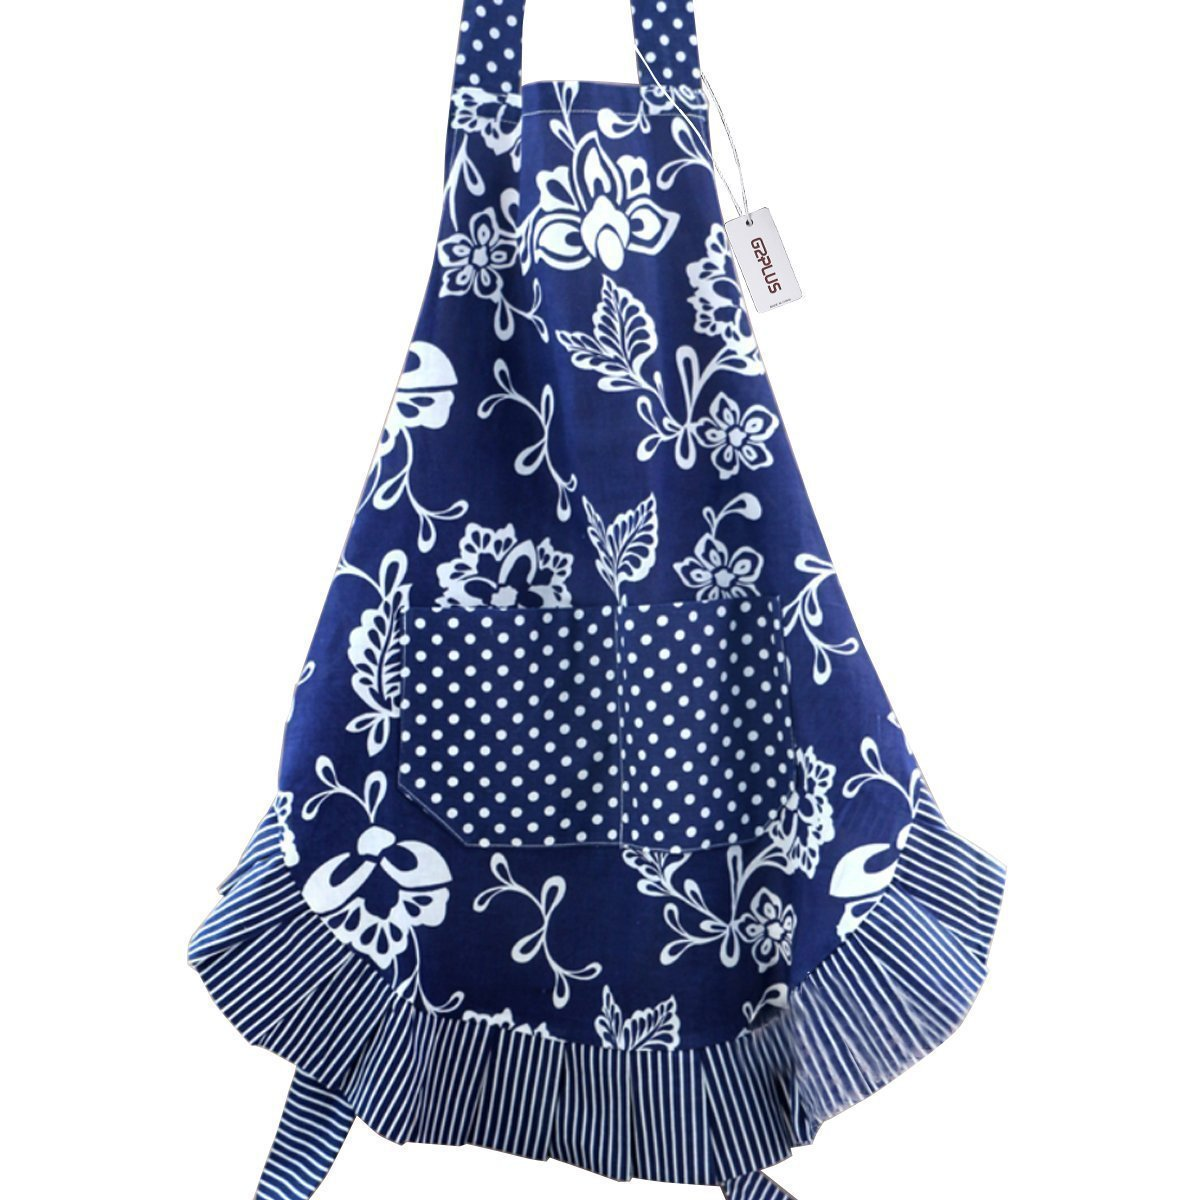 Floral Apron for Women with Pockets, Extra Long Ties, G2PLUS Vintage Apron, Perfect for Kitchen Cooking, Baking and Gardening, 29 x 21 – inch (Blue) 4